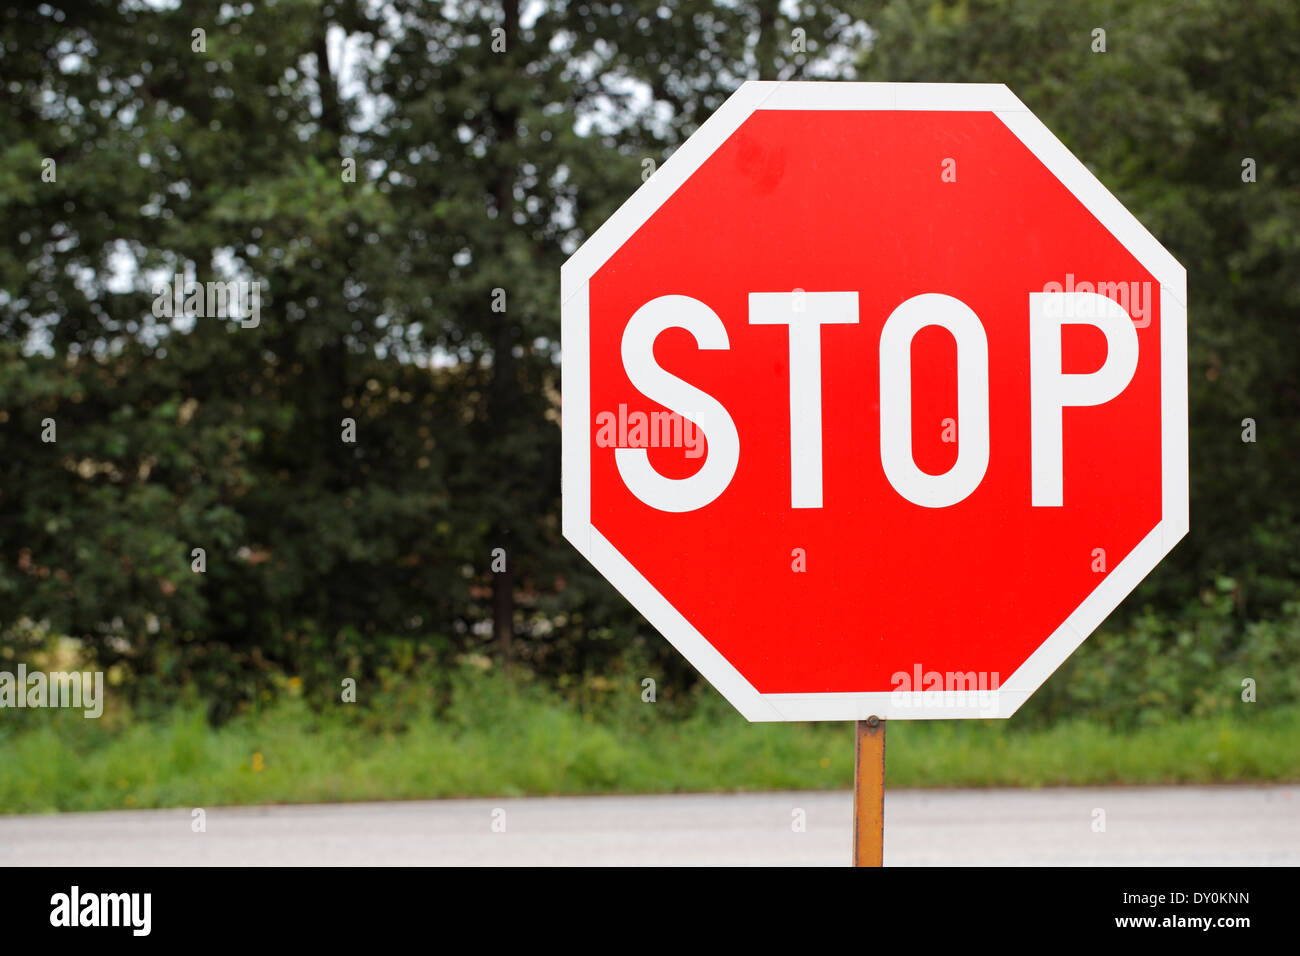 old STOP traffic sign at the side of a road. - Stock Image